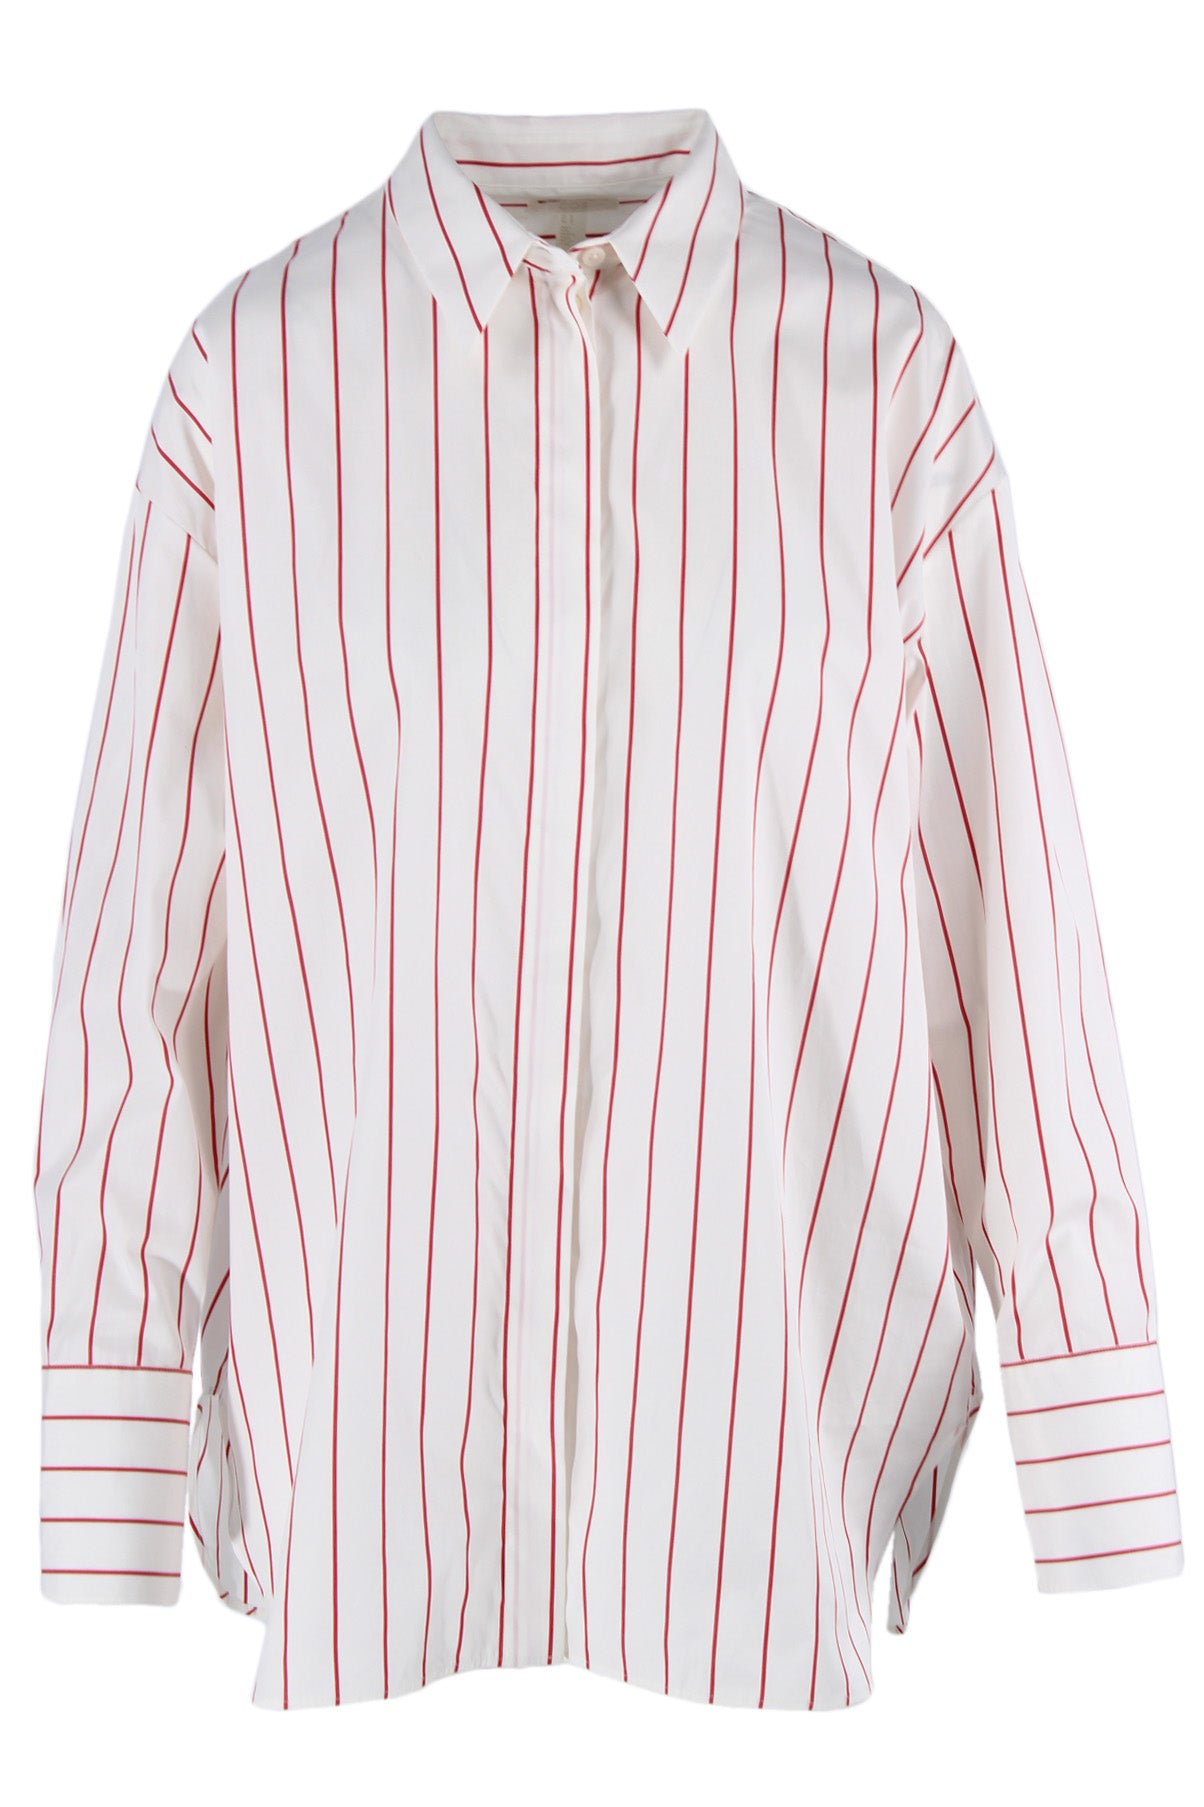 cos white long sleeve collar top. features a button down closure, buttoned sleeve cuffs, & red stripes throughout.